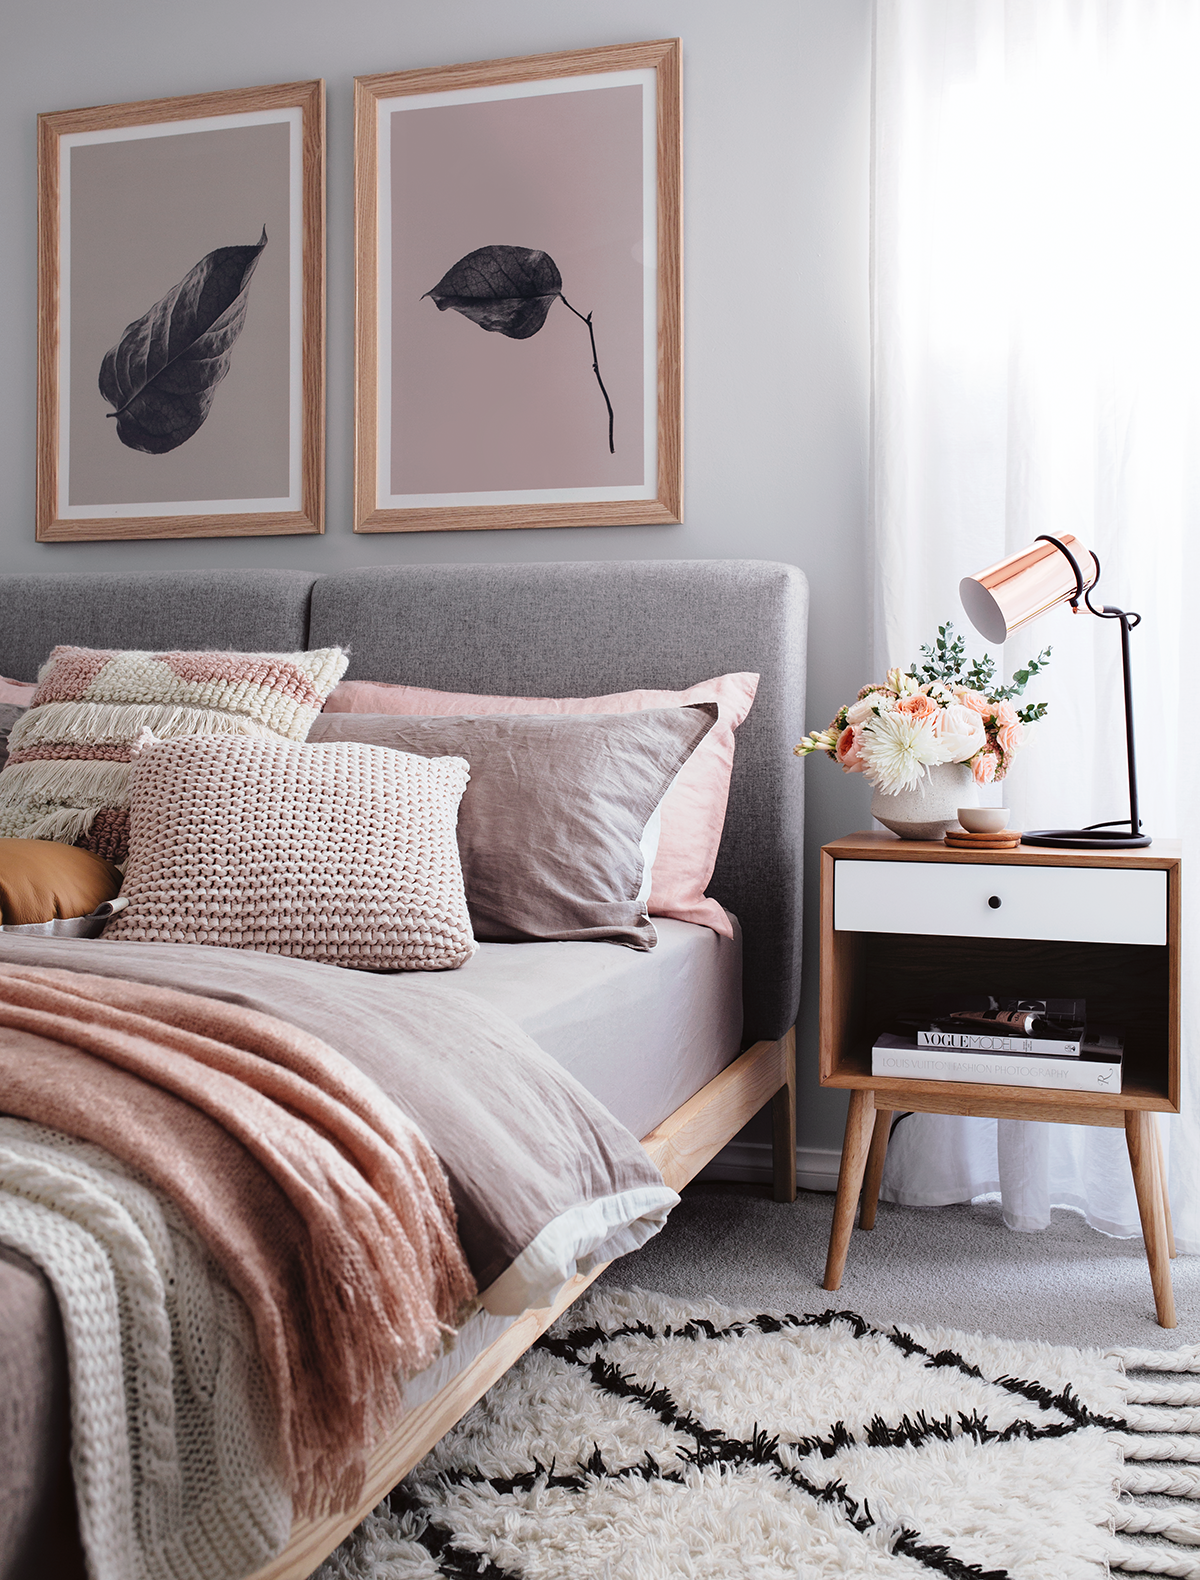 cosy bedroom in peach and grey bedroom styles home bedroom on modern luxurious bedroom ideas decoration some inspiration to advise you in decorating your room id=58239